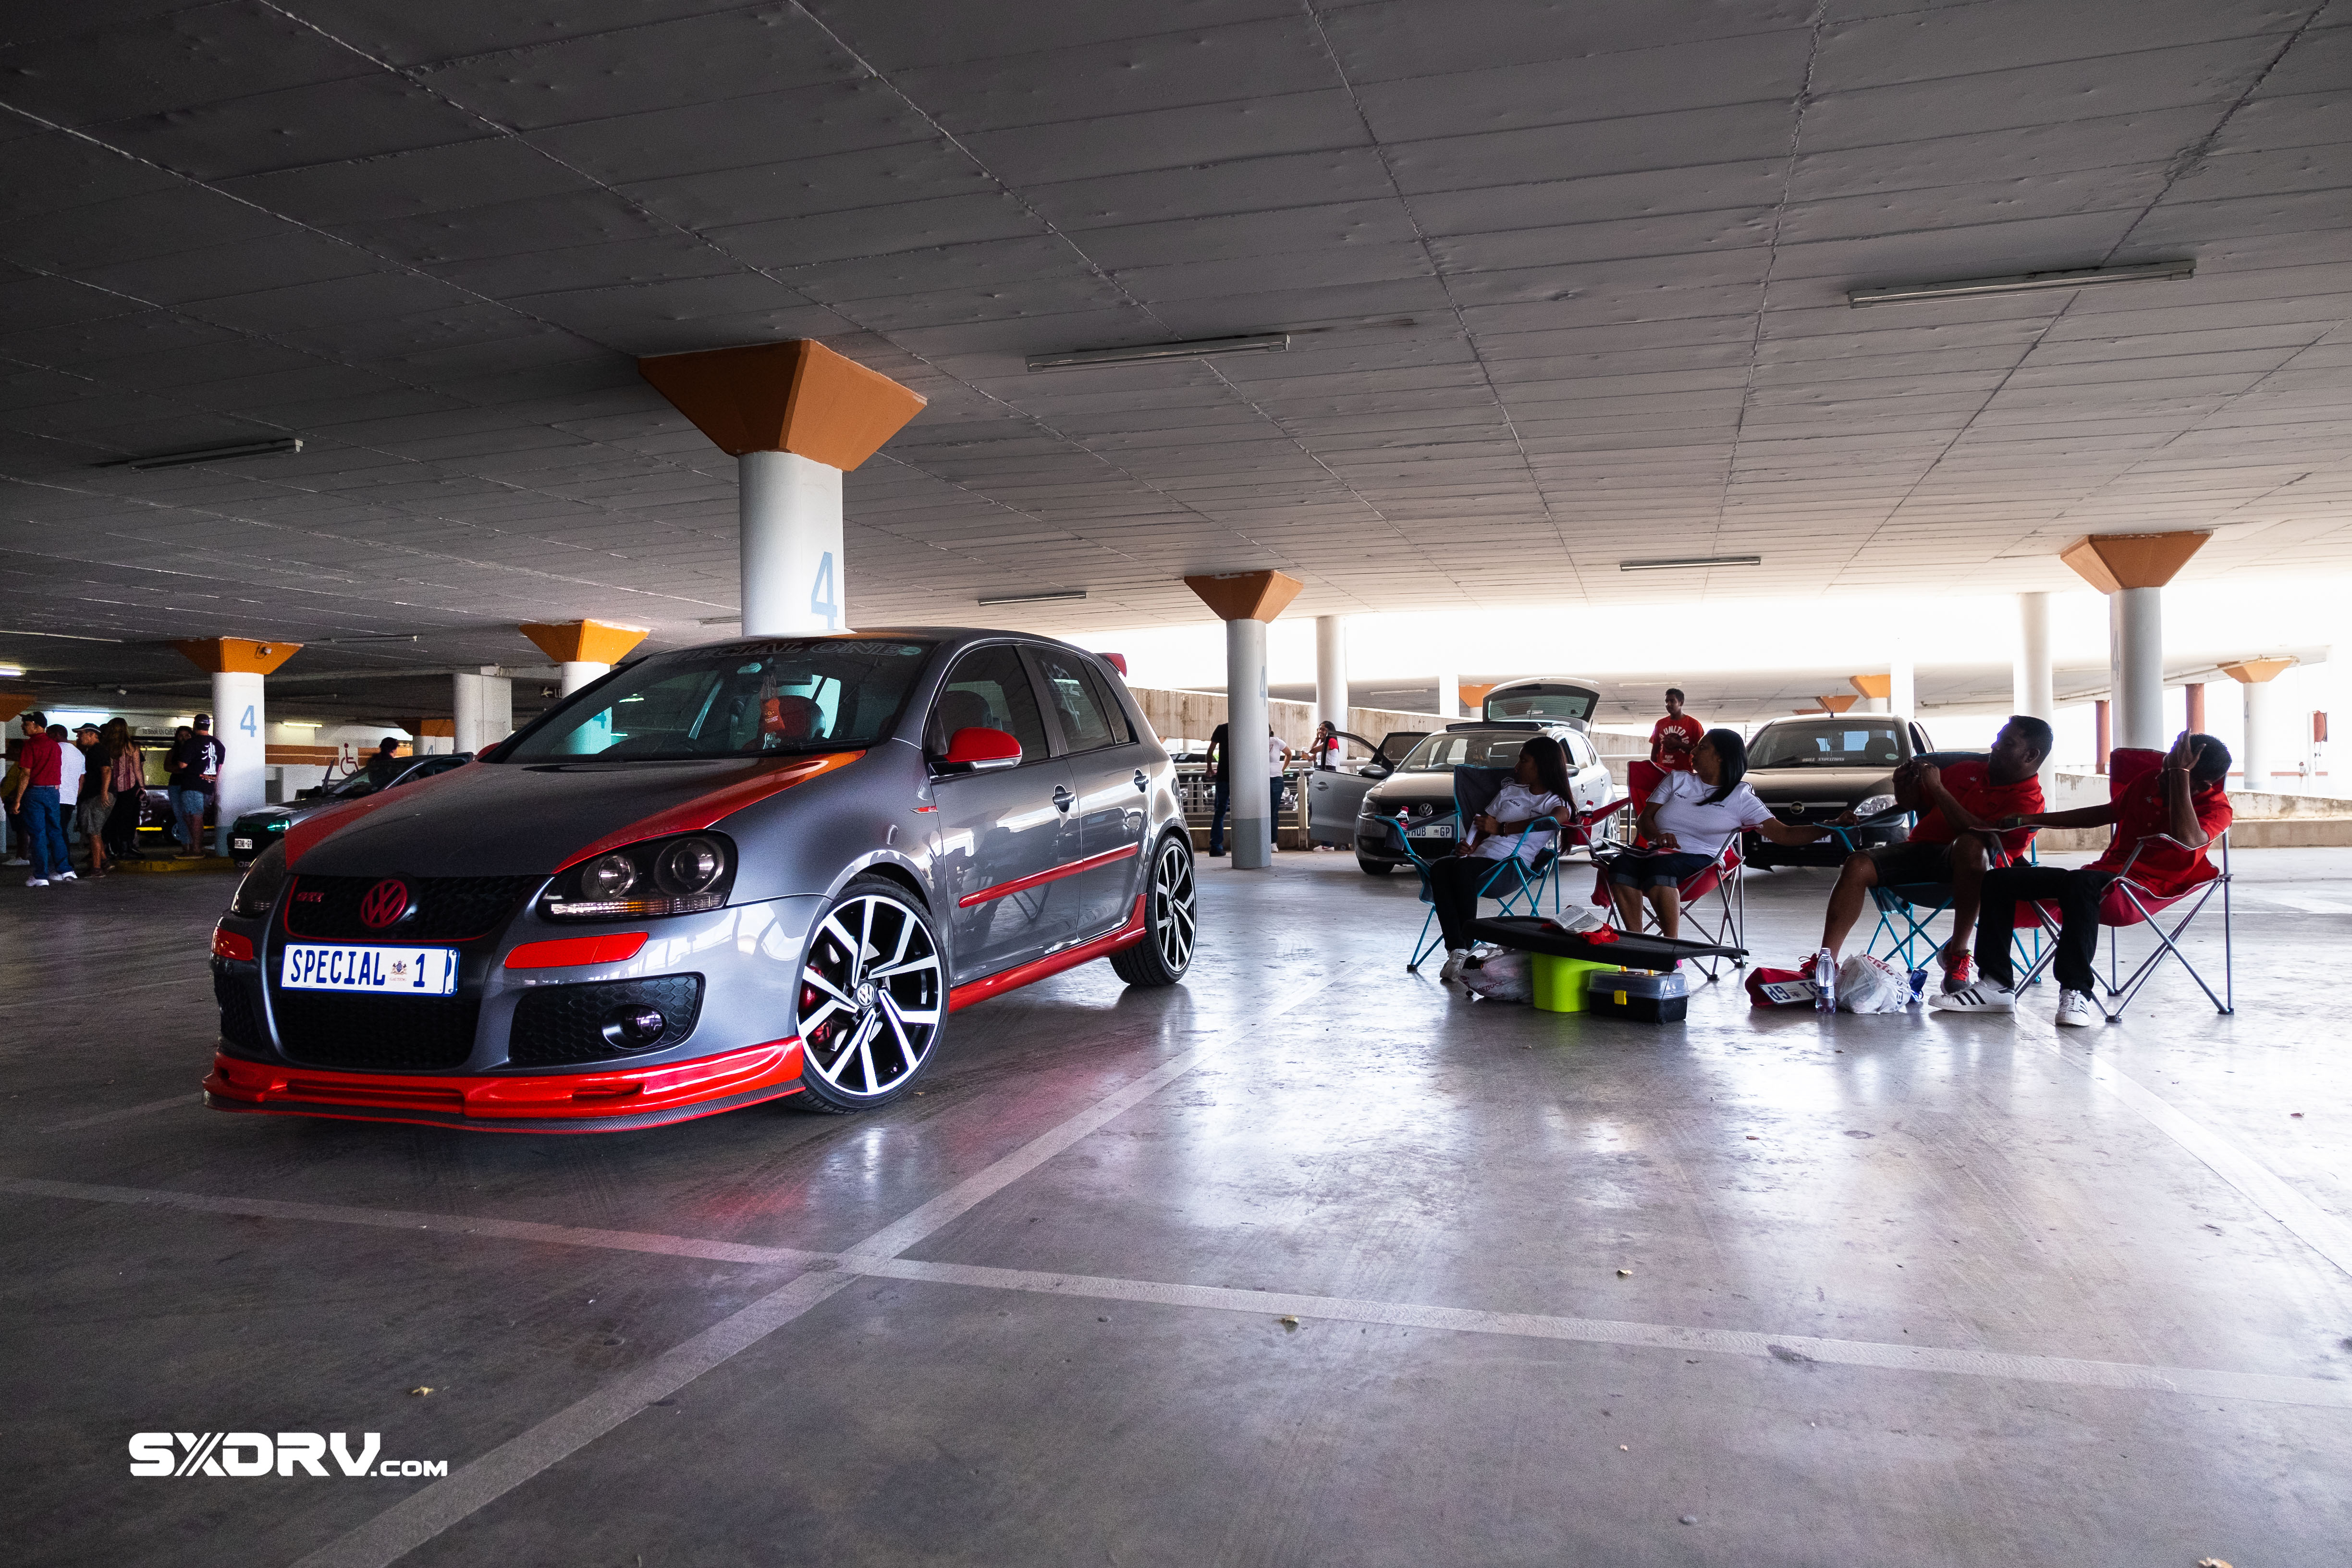 Cars,Automotive,nitro crew,sound,subwoofer,show and shine,event,rivonia,johannesburg,volkswagen,gti,stance,golf,citi,polo,bmw,chevy,chevrolet,toyota,News,